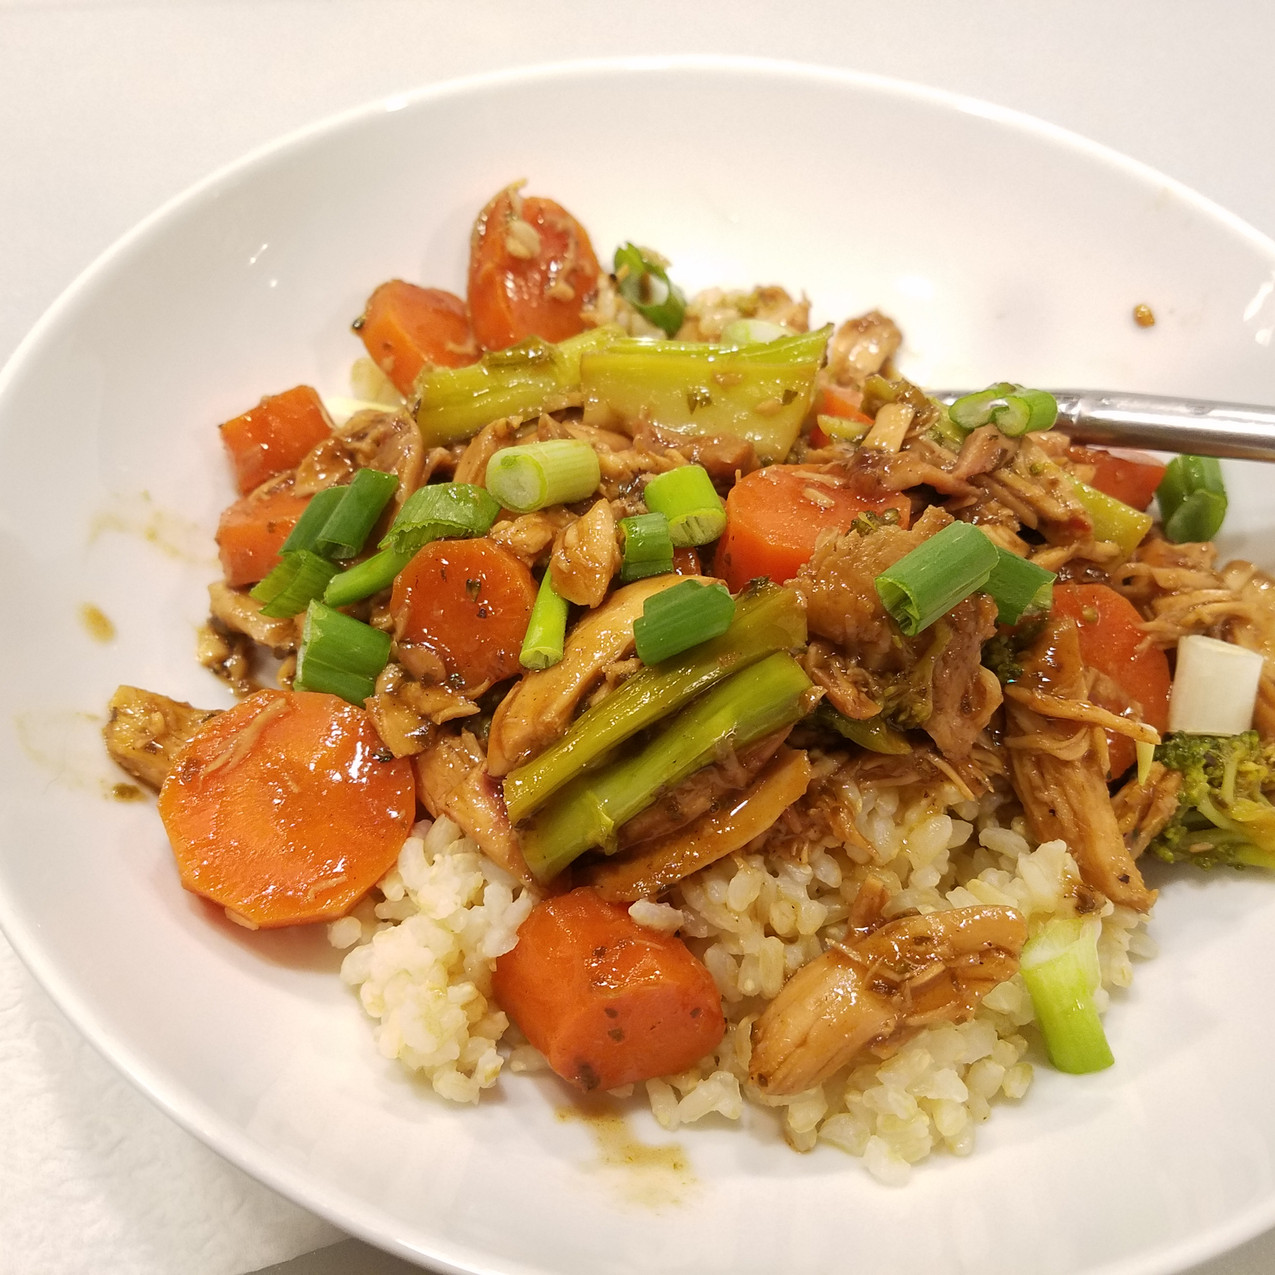 Smoked Pulled Chicken Stir-fry